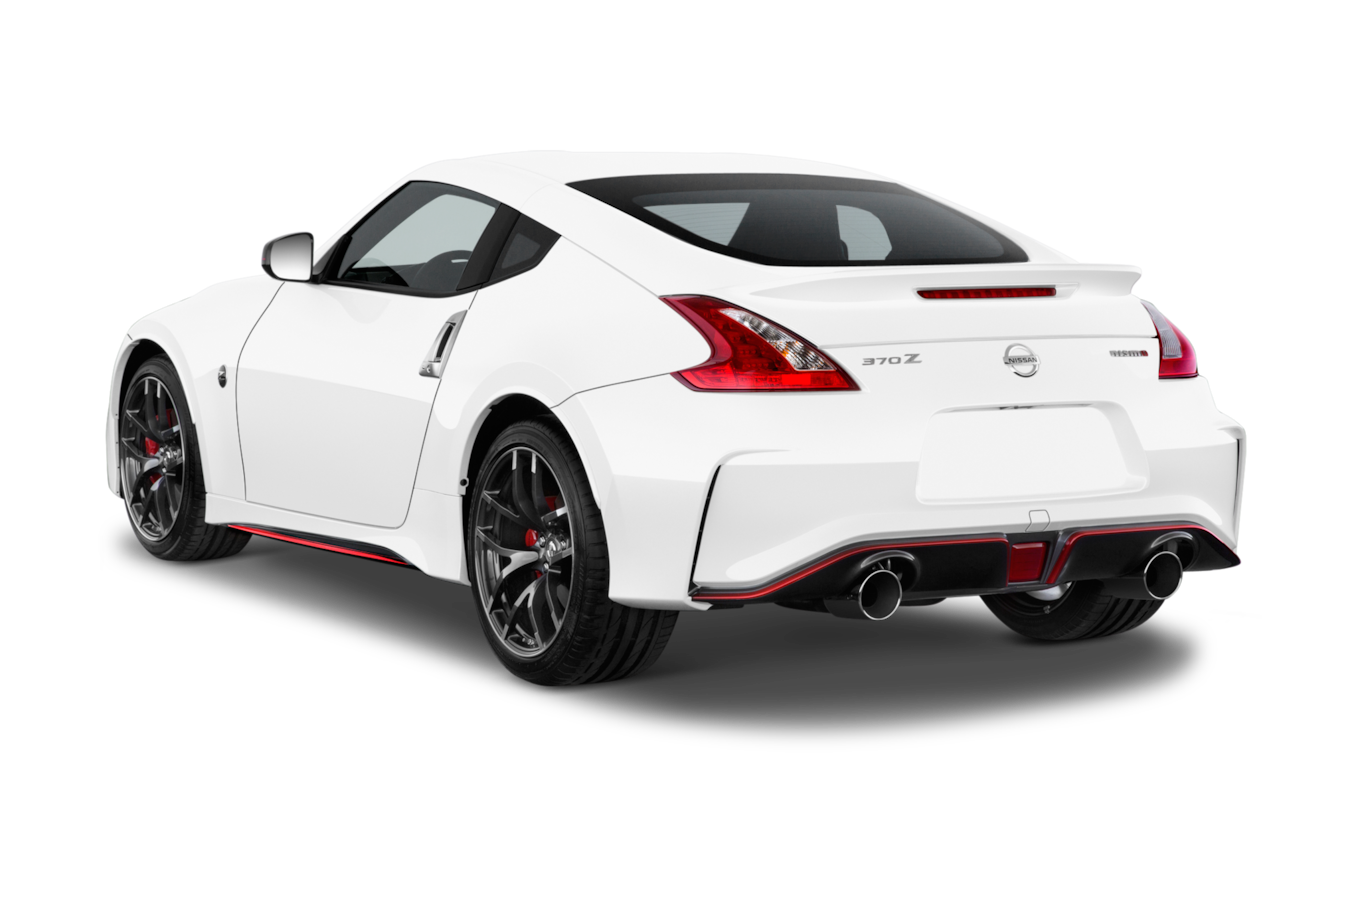 14 All New 2019 Nissan Z Turbo Nismo Price Design And Review